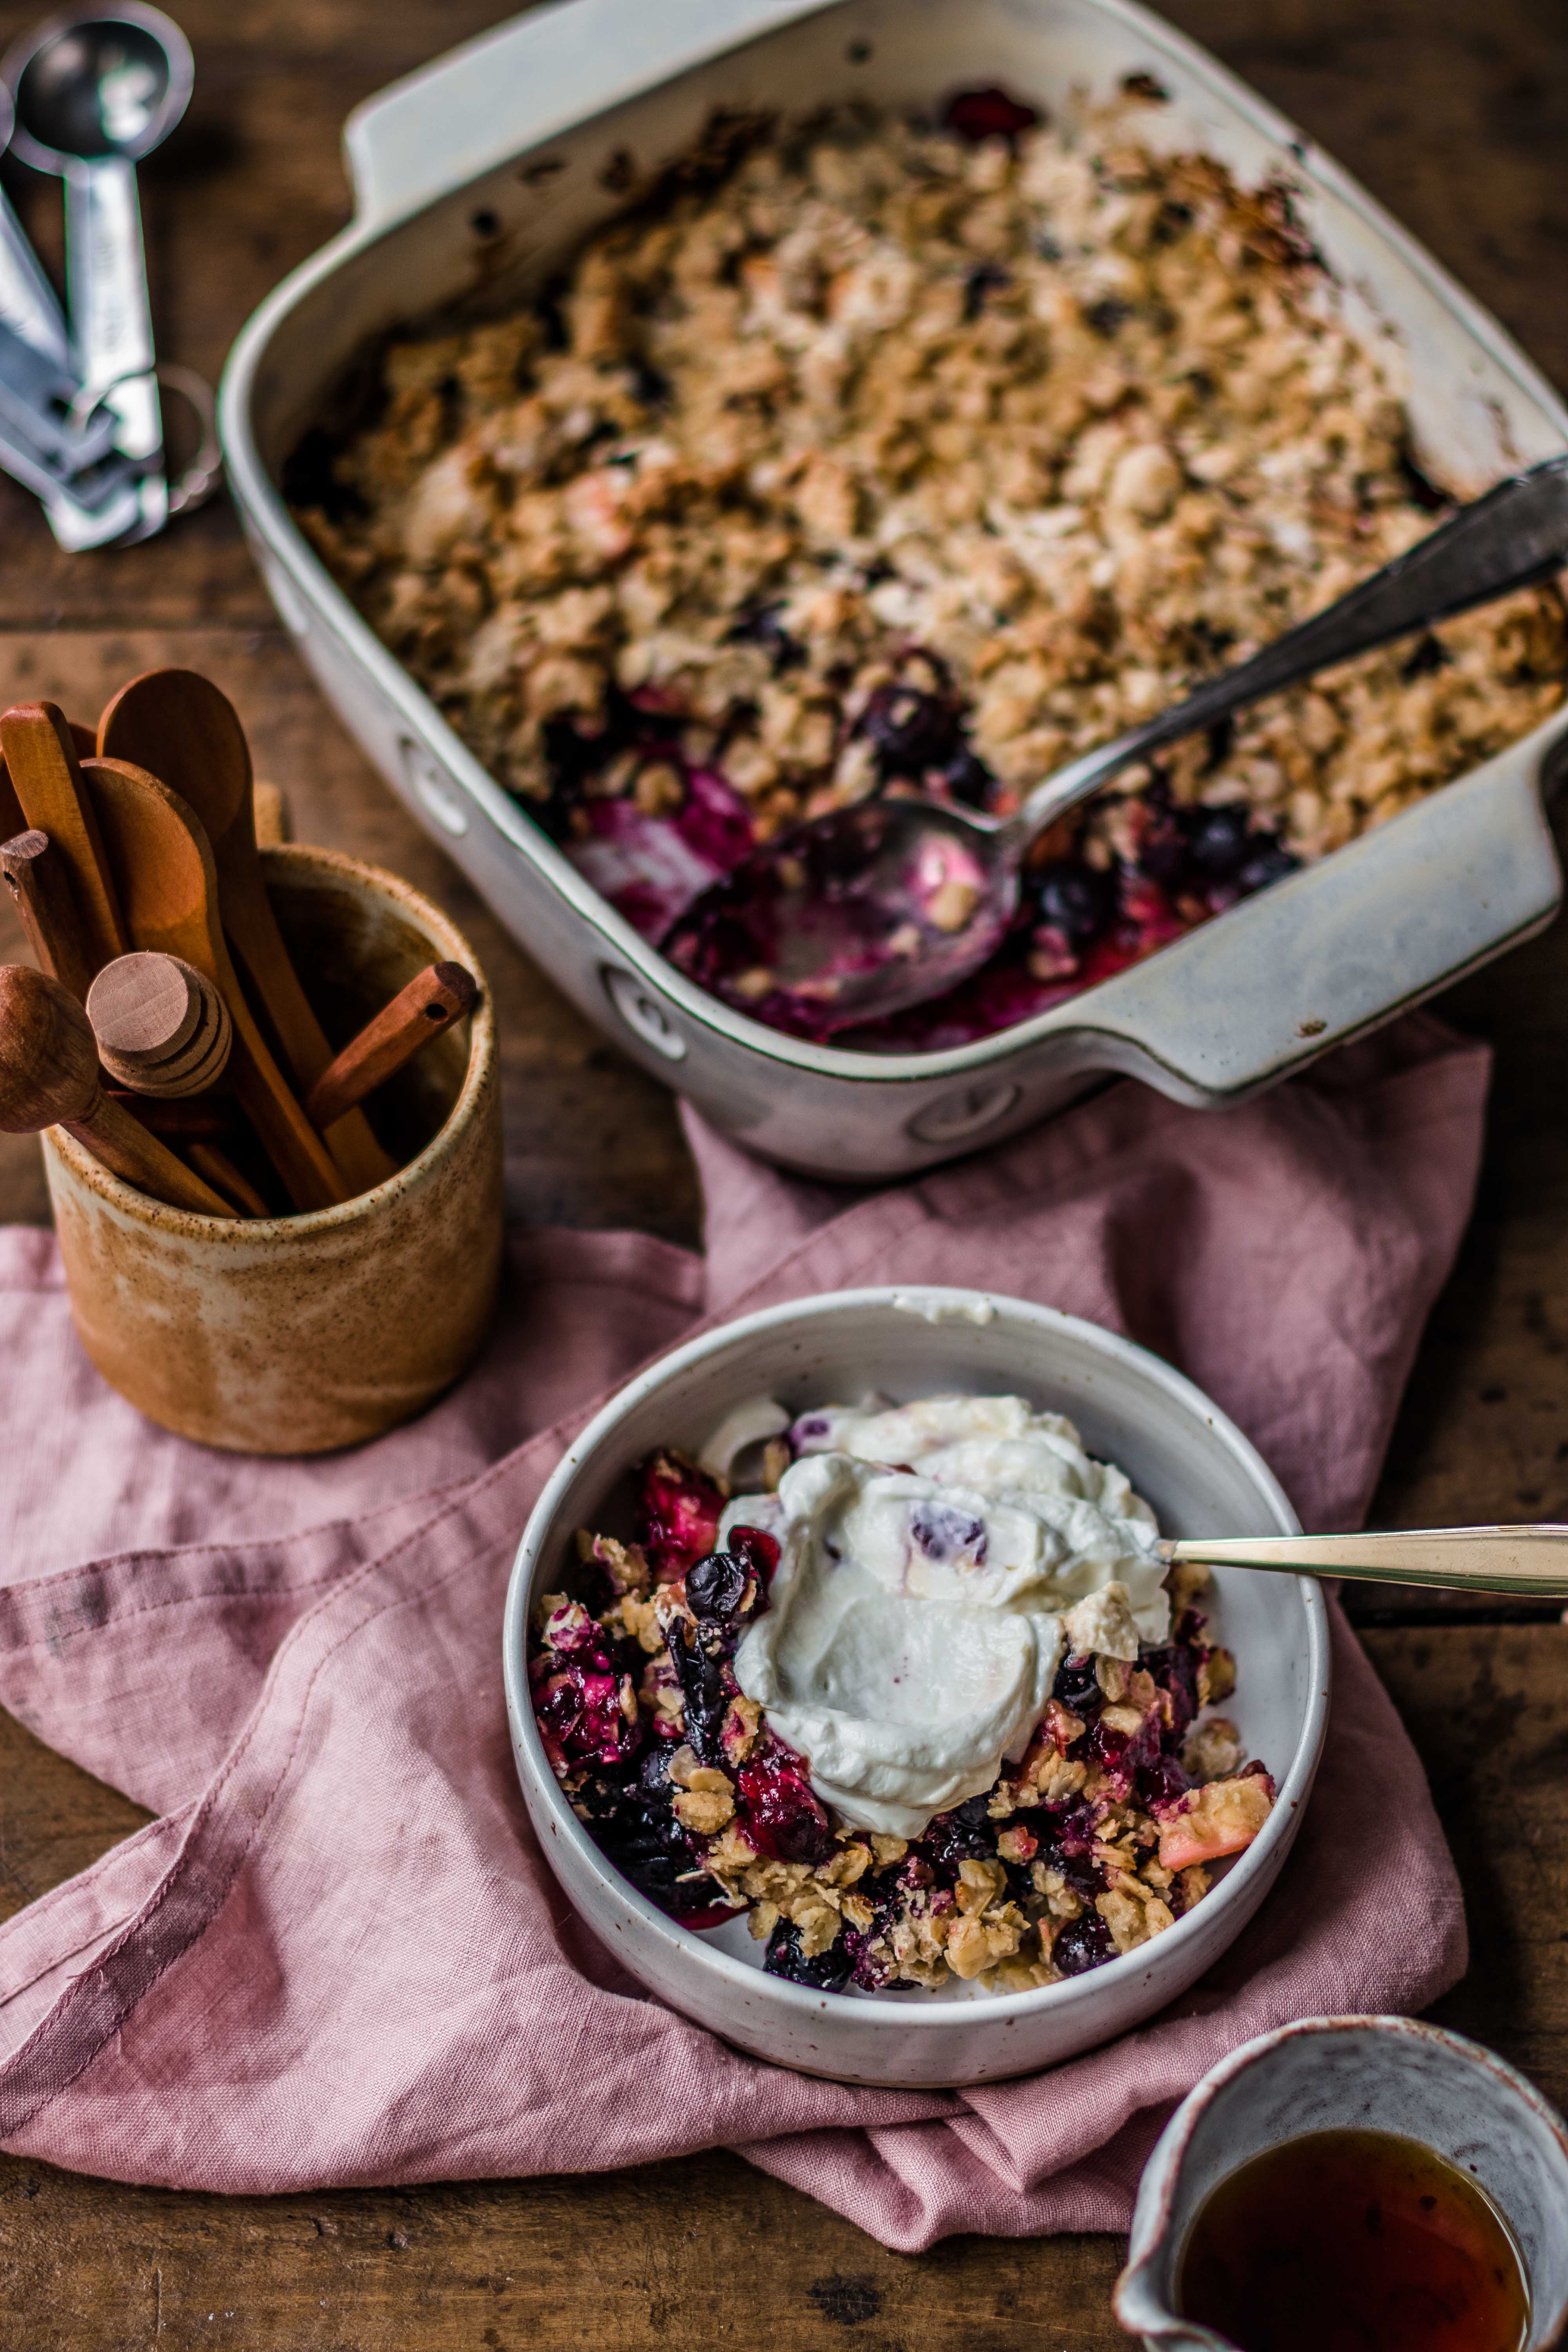 Apple & blueberry crumble